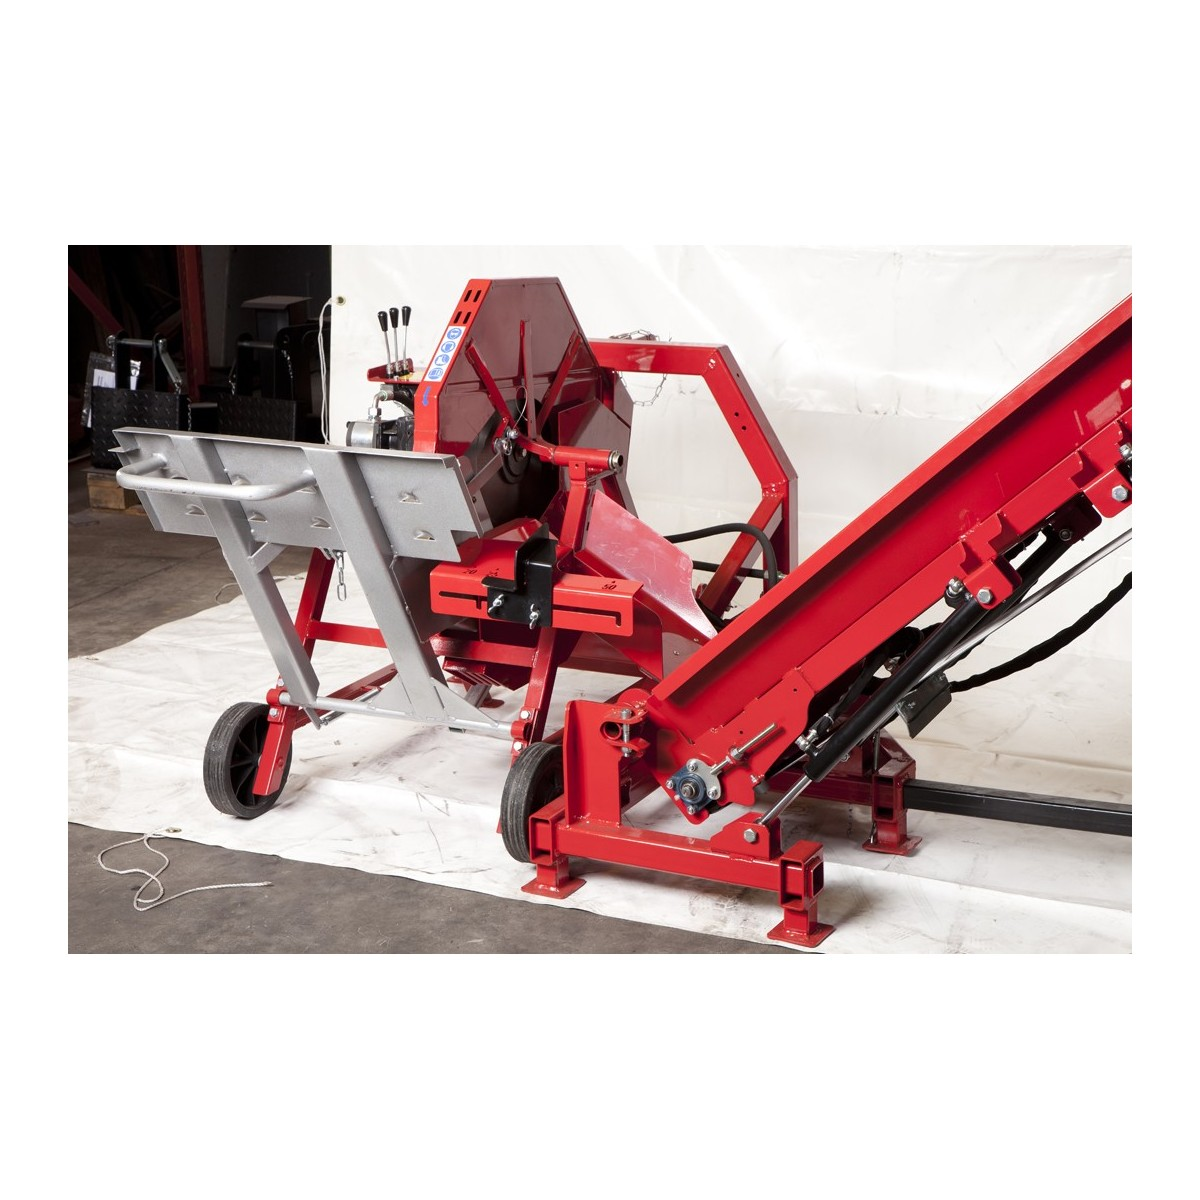 Achat Scie Circulaire A Chevalet Avec Tapis Hydraulique Amr Bender